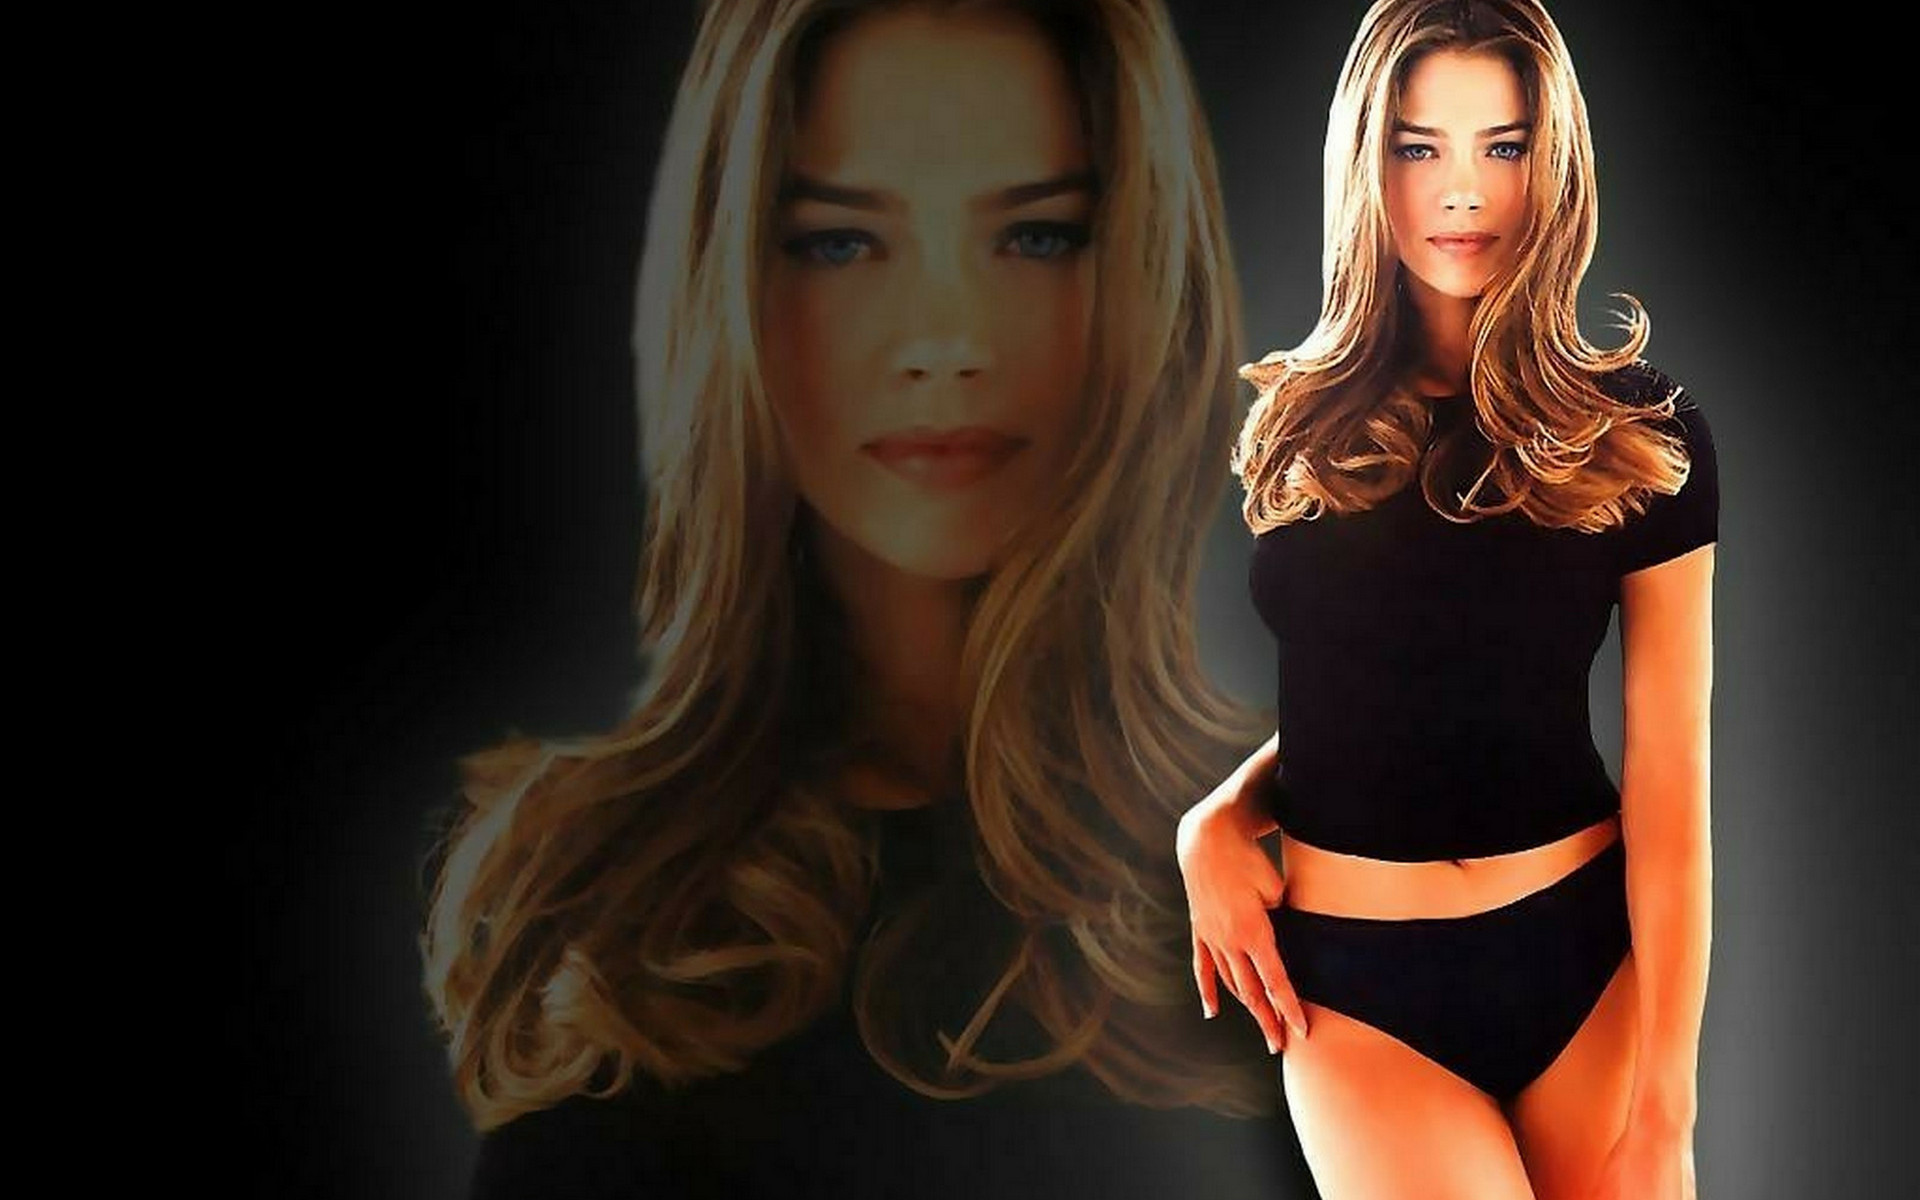 denise richards 1920x1200 wallpapers - photo #36